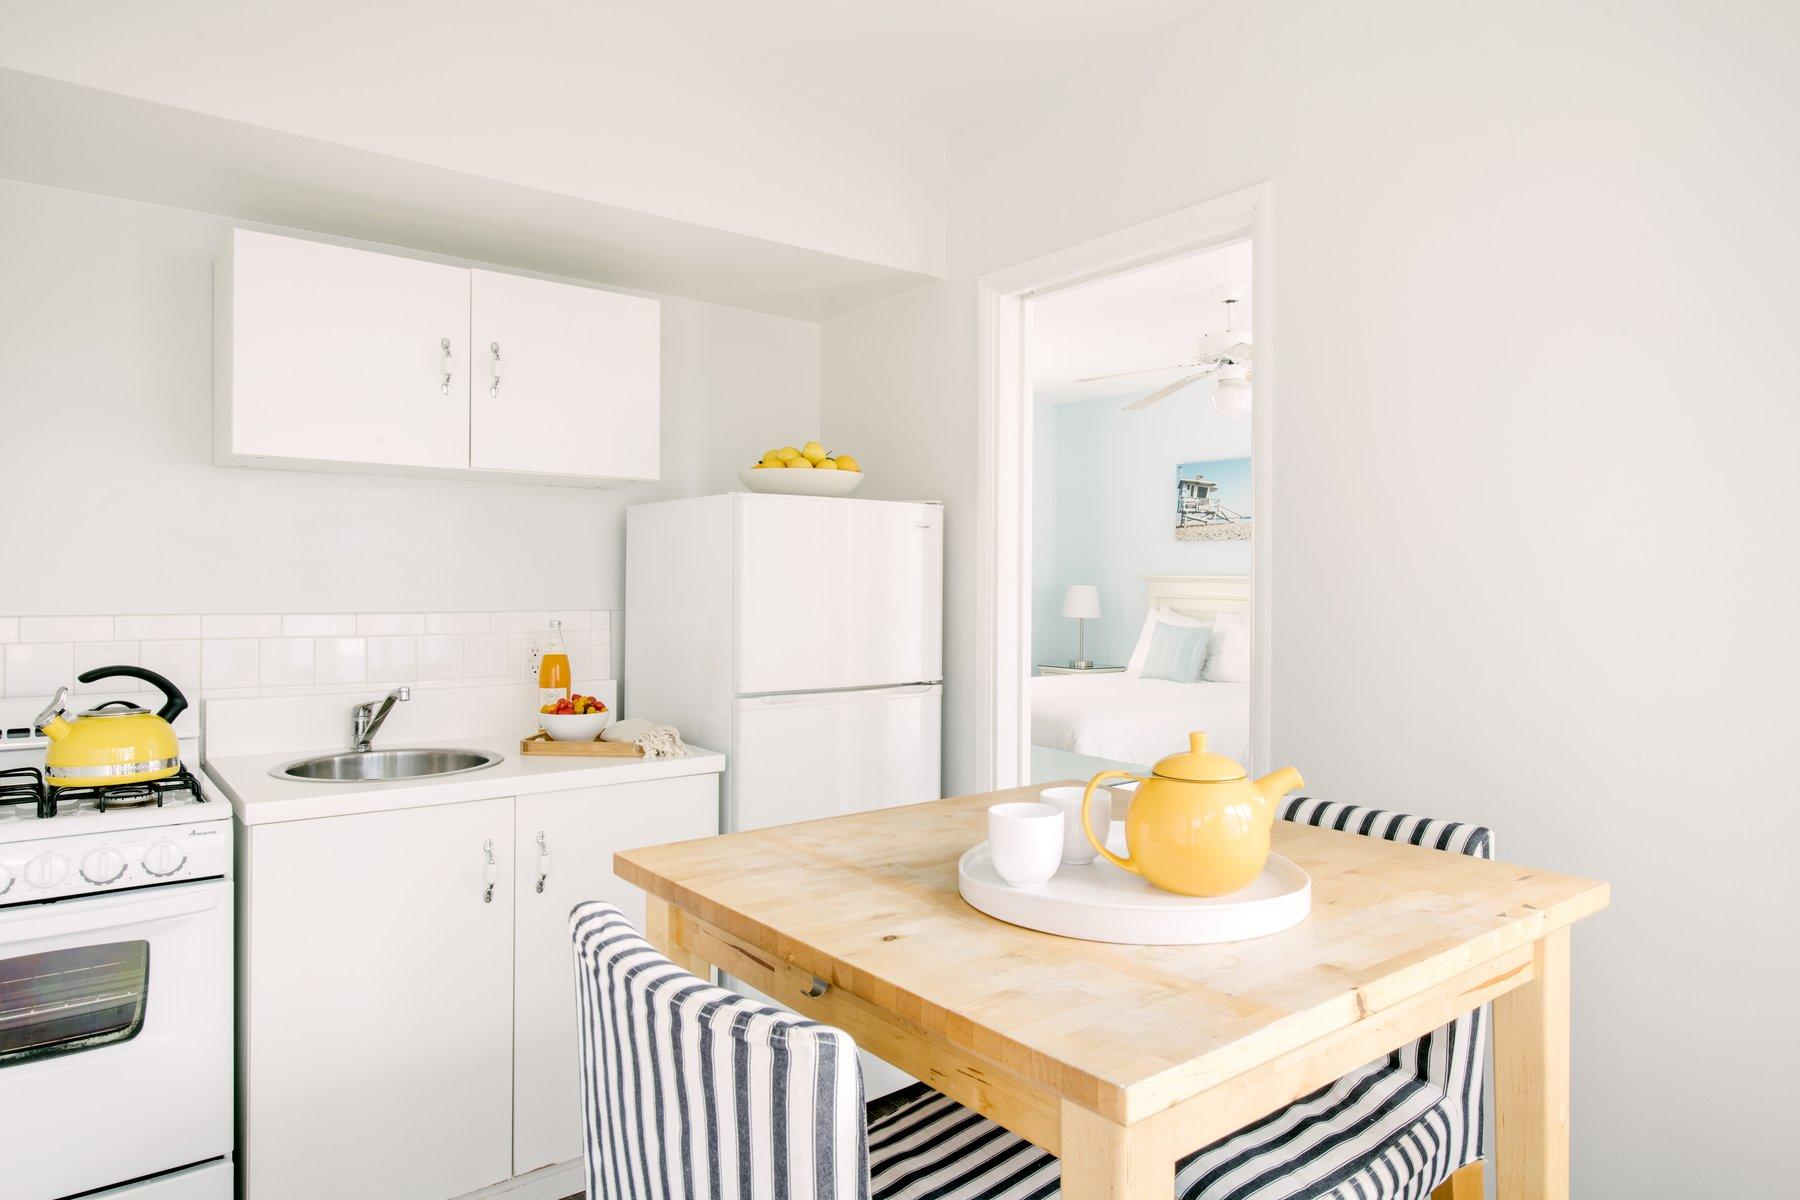 Kitchenette in spacious hotel room